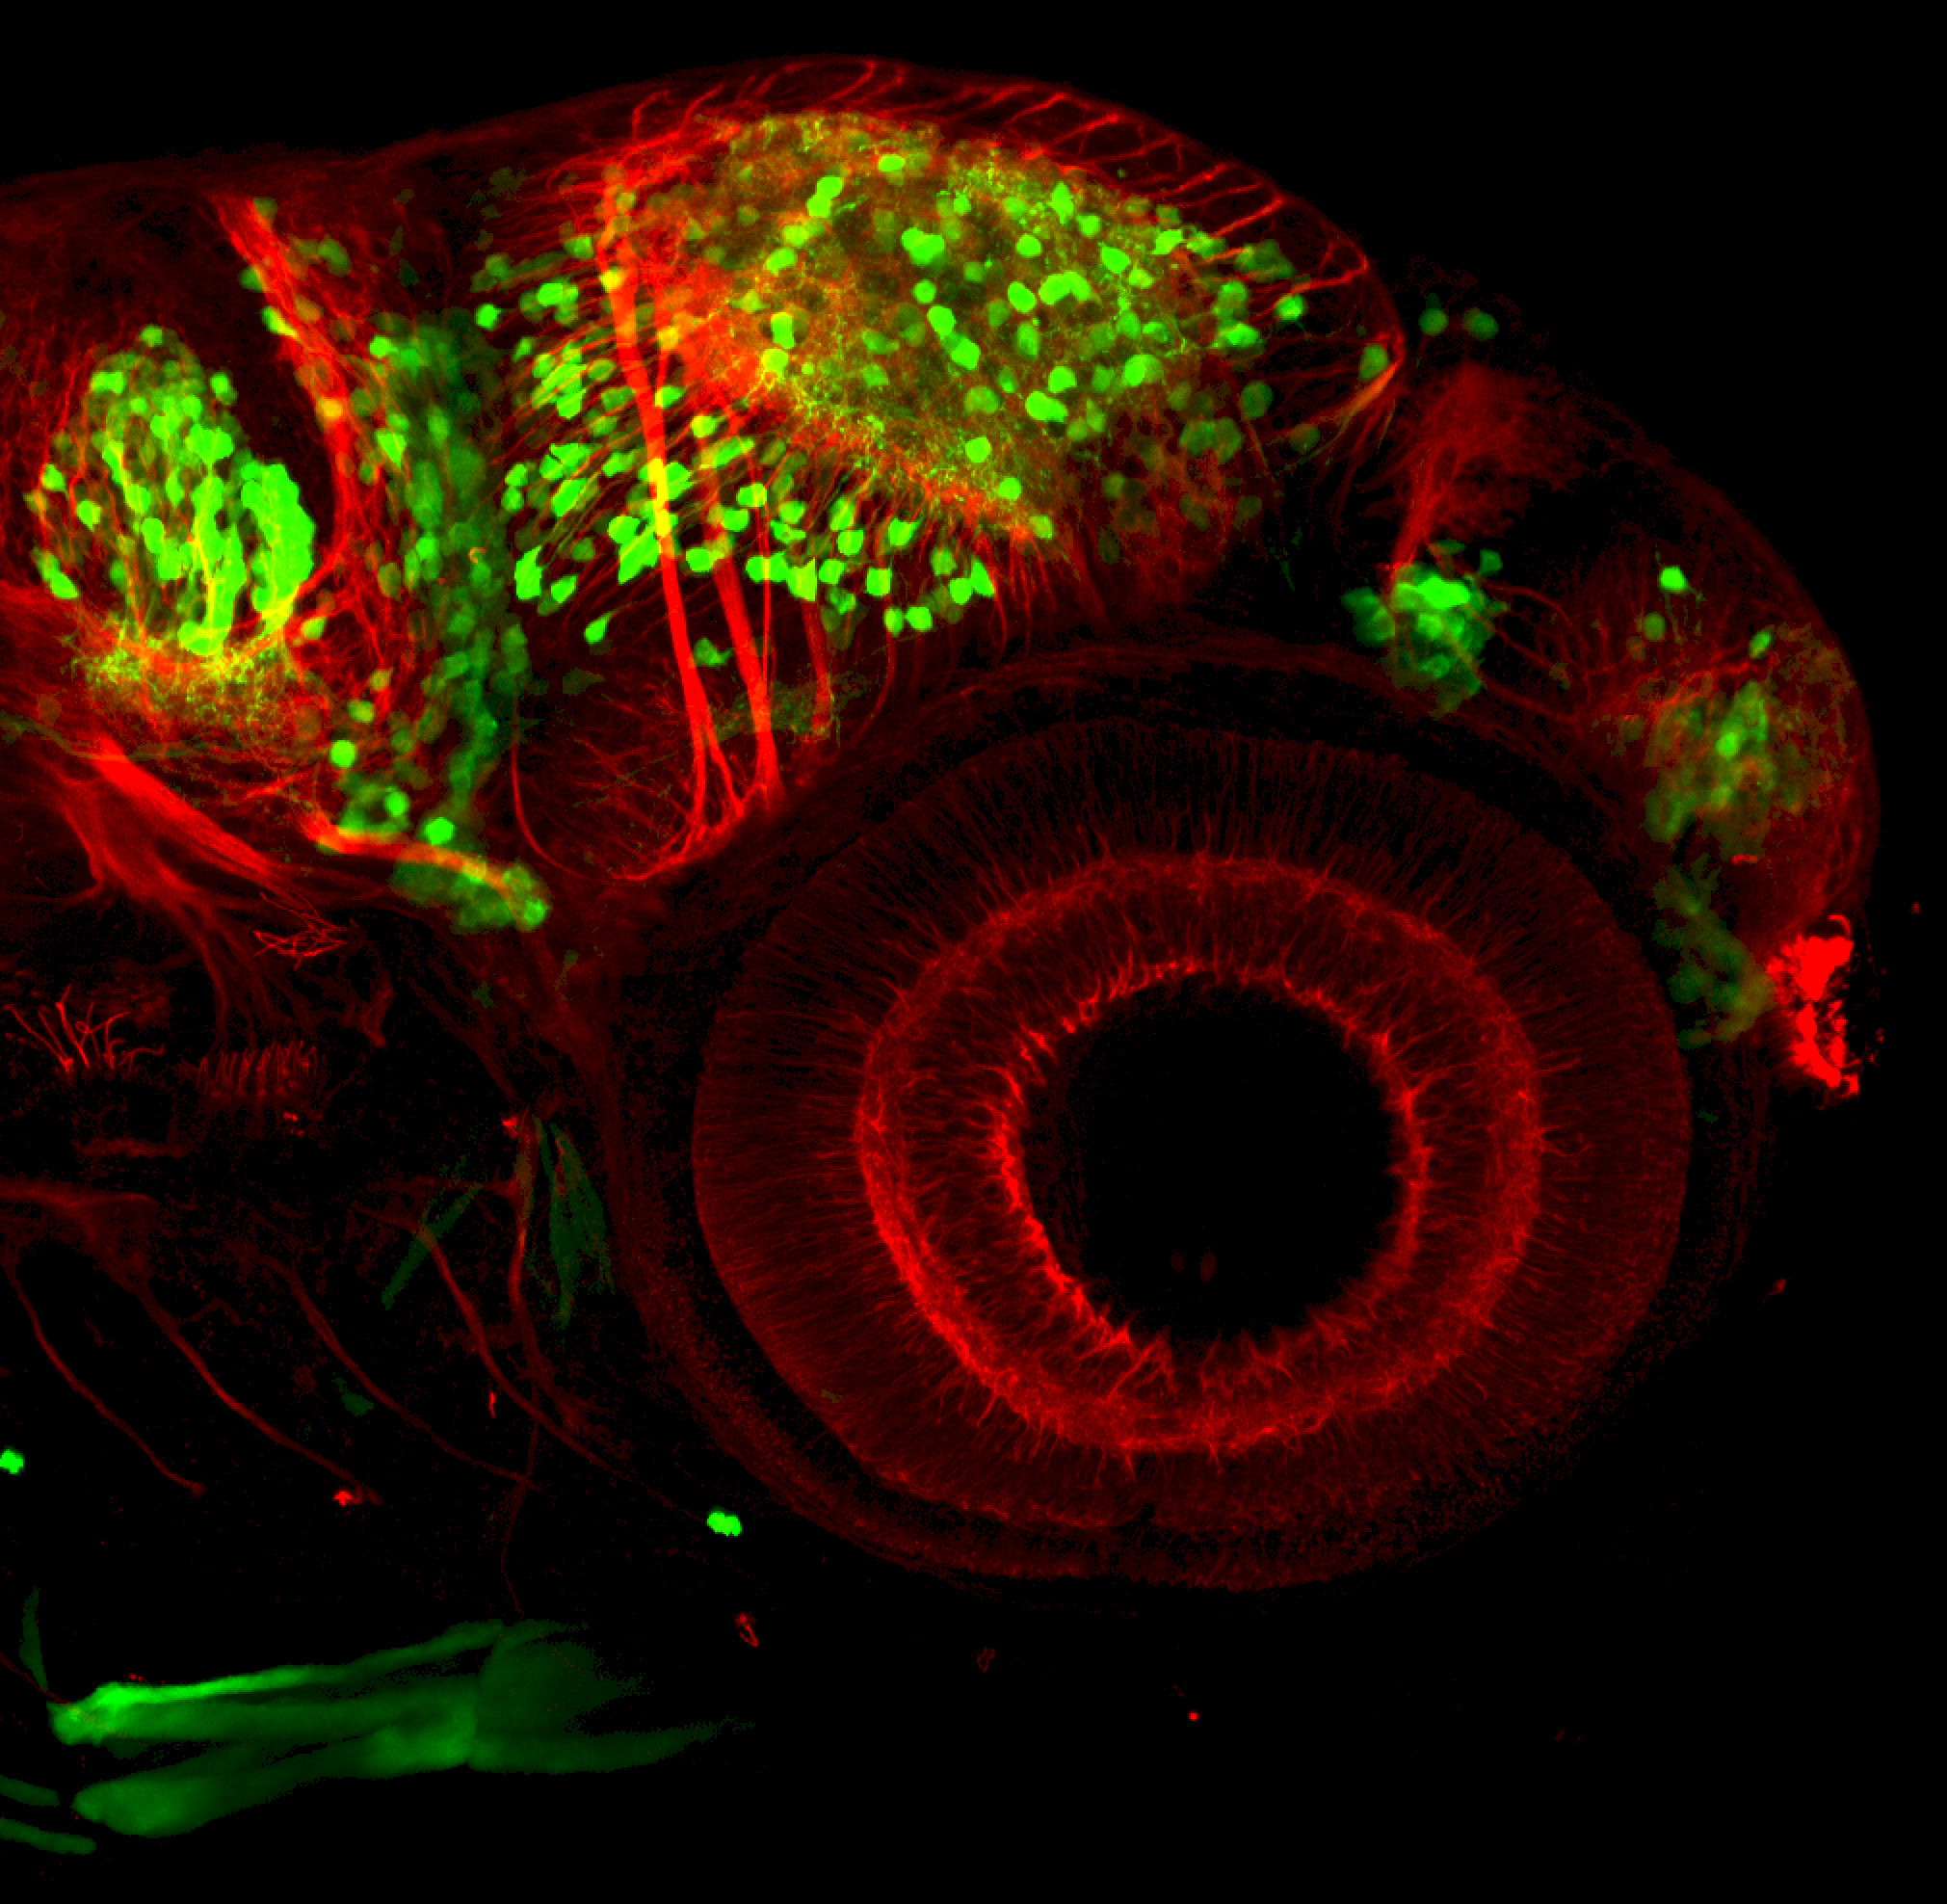 3dpf lateral view of dlx:GFP in forebrain